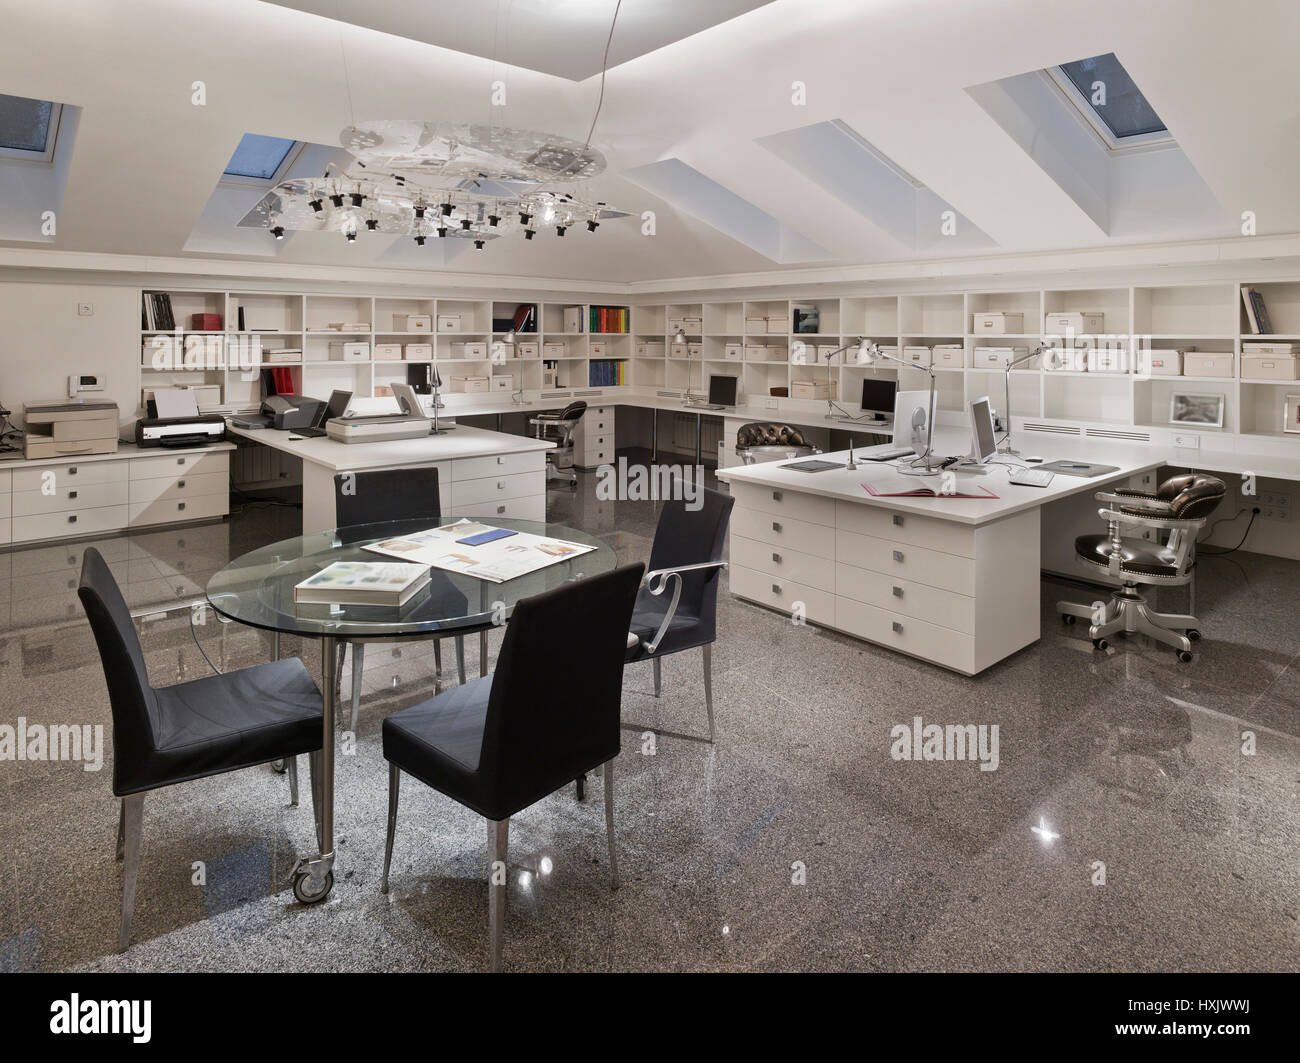 Architectural Bureau Firma Office Interior Bureau Design Stock Photo Alamy